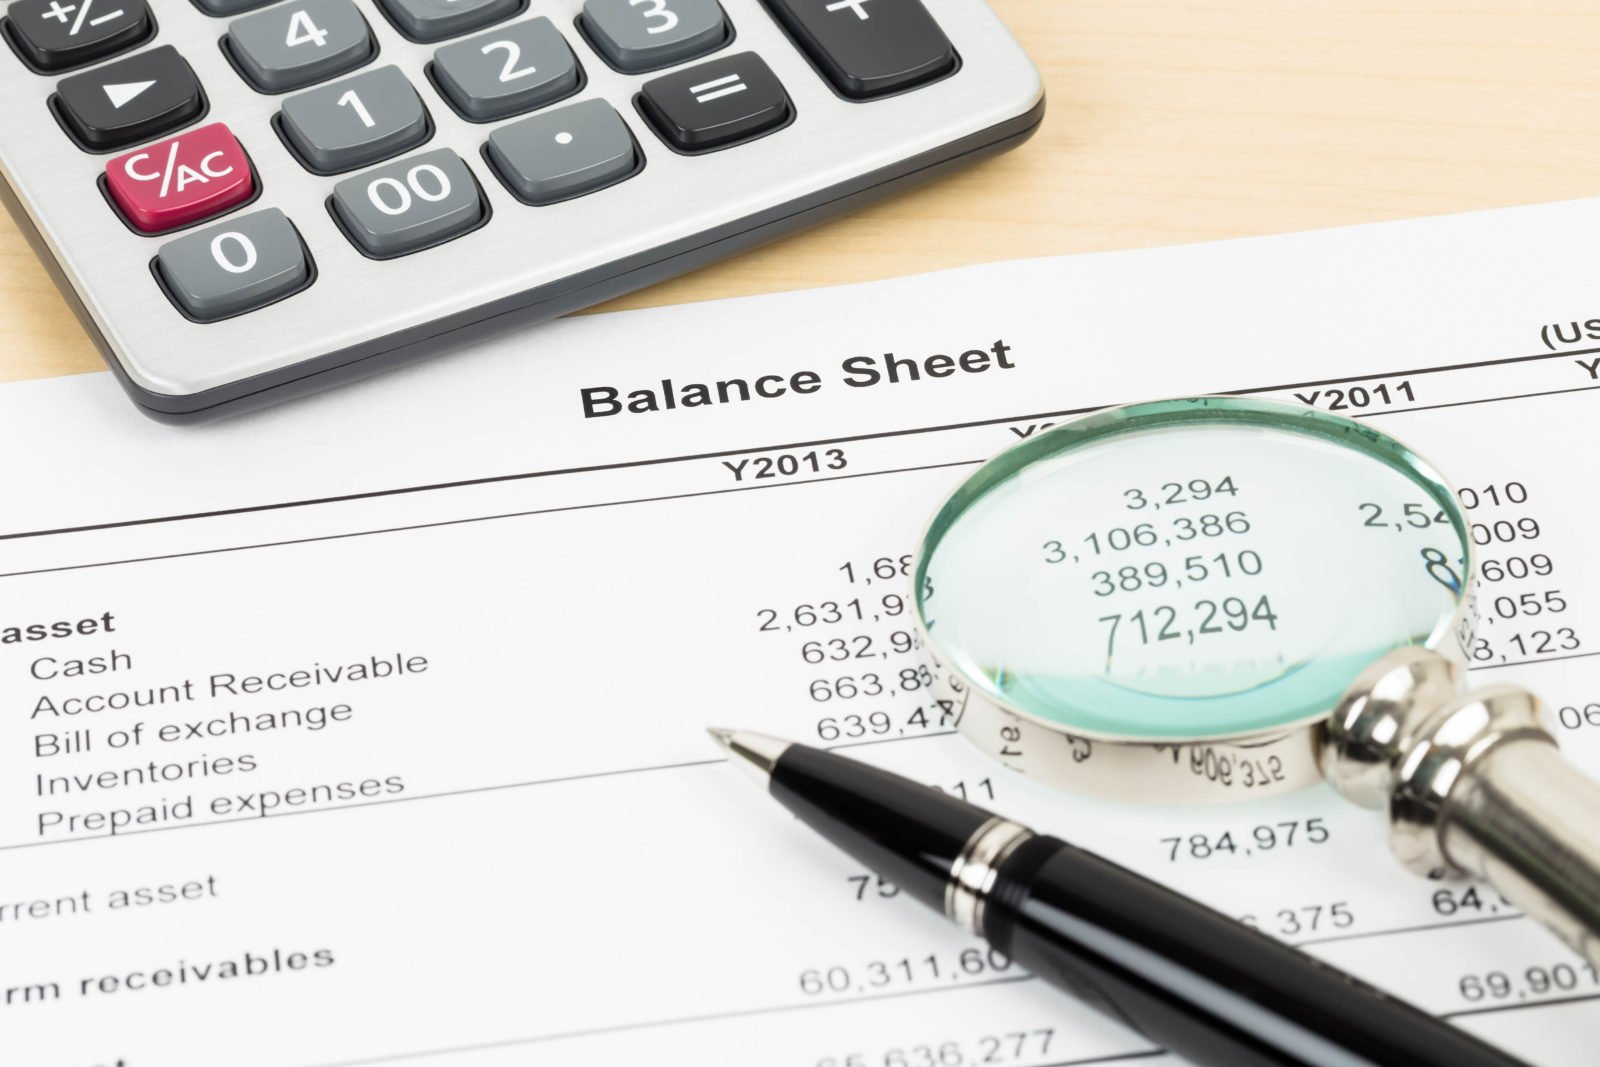 Balance Sheet Financial Statement